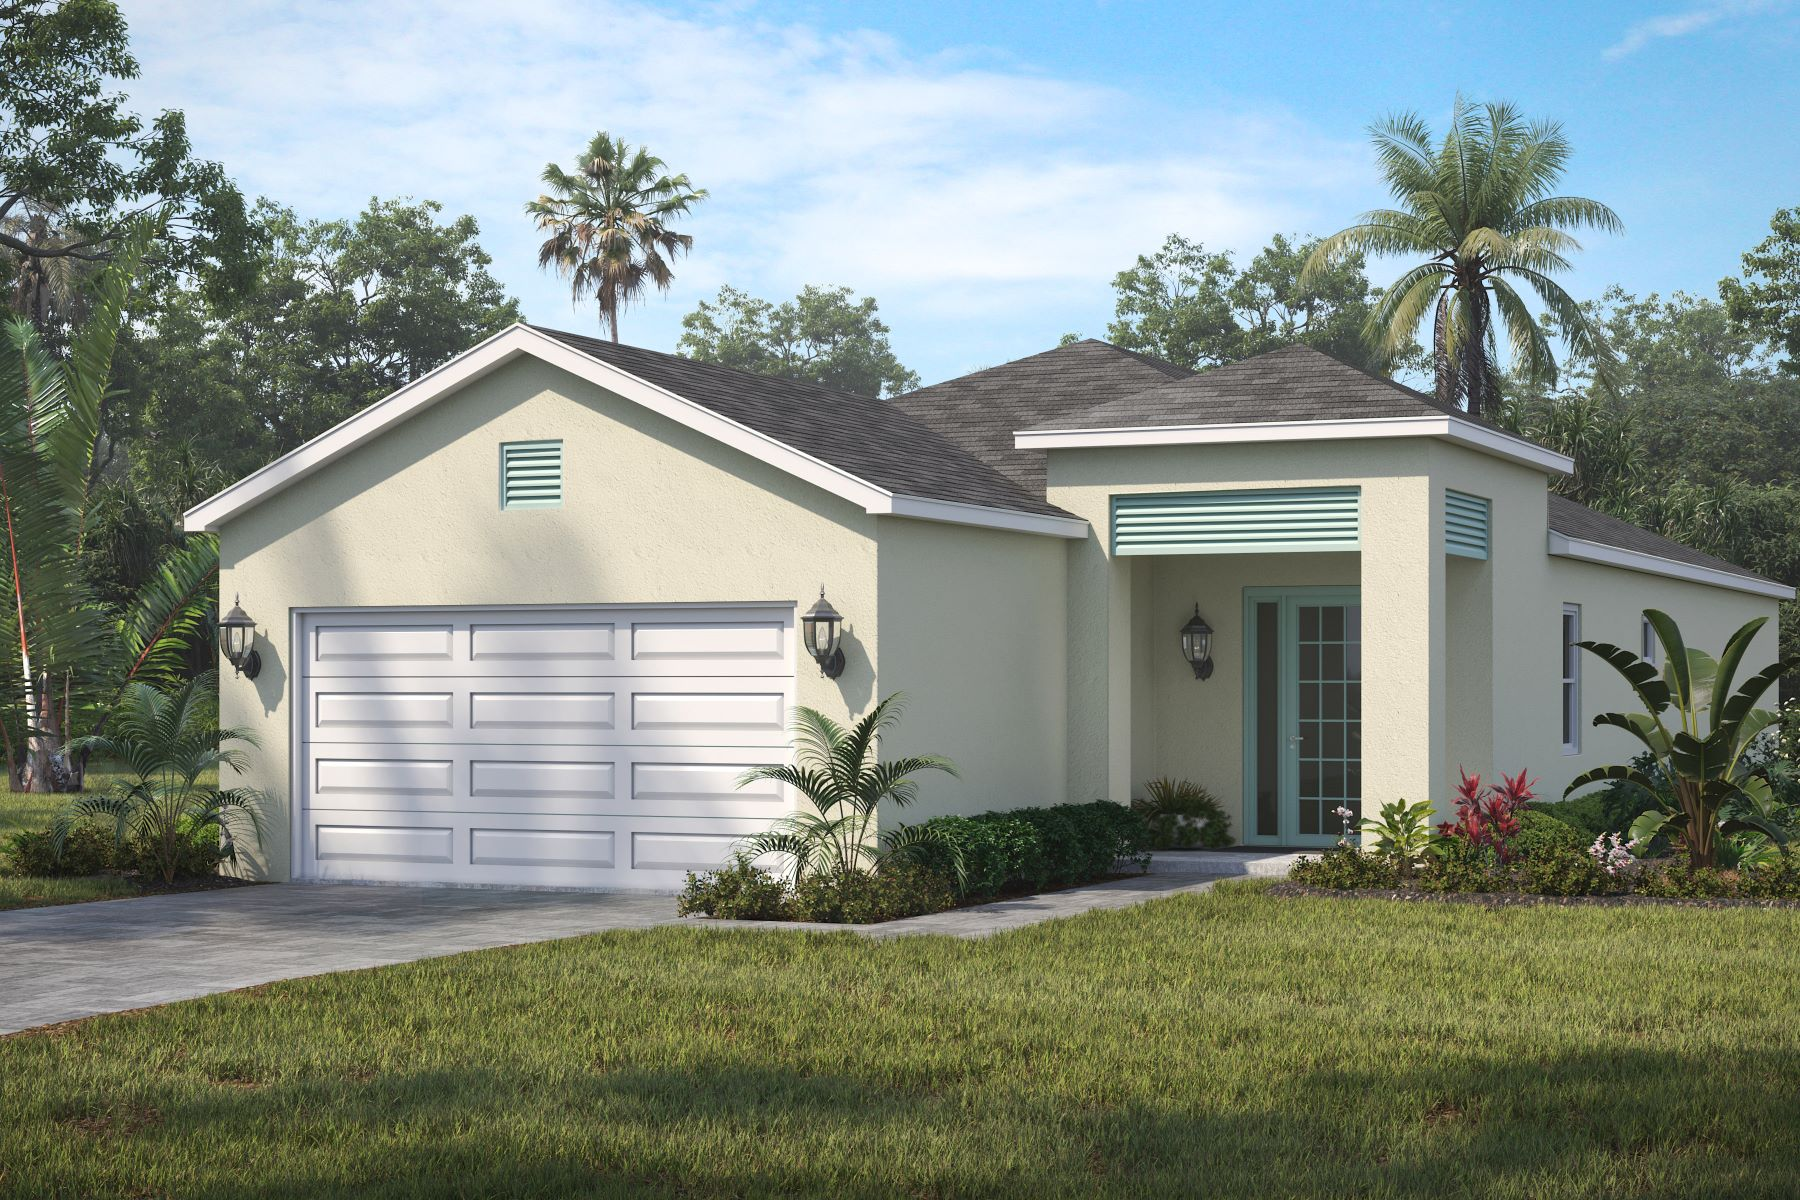 Single Family Homes for Sale at New Falls III Model! 2151 Falls Manor Vero Beach, Florida 32967 United States